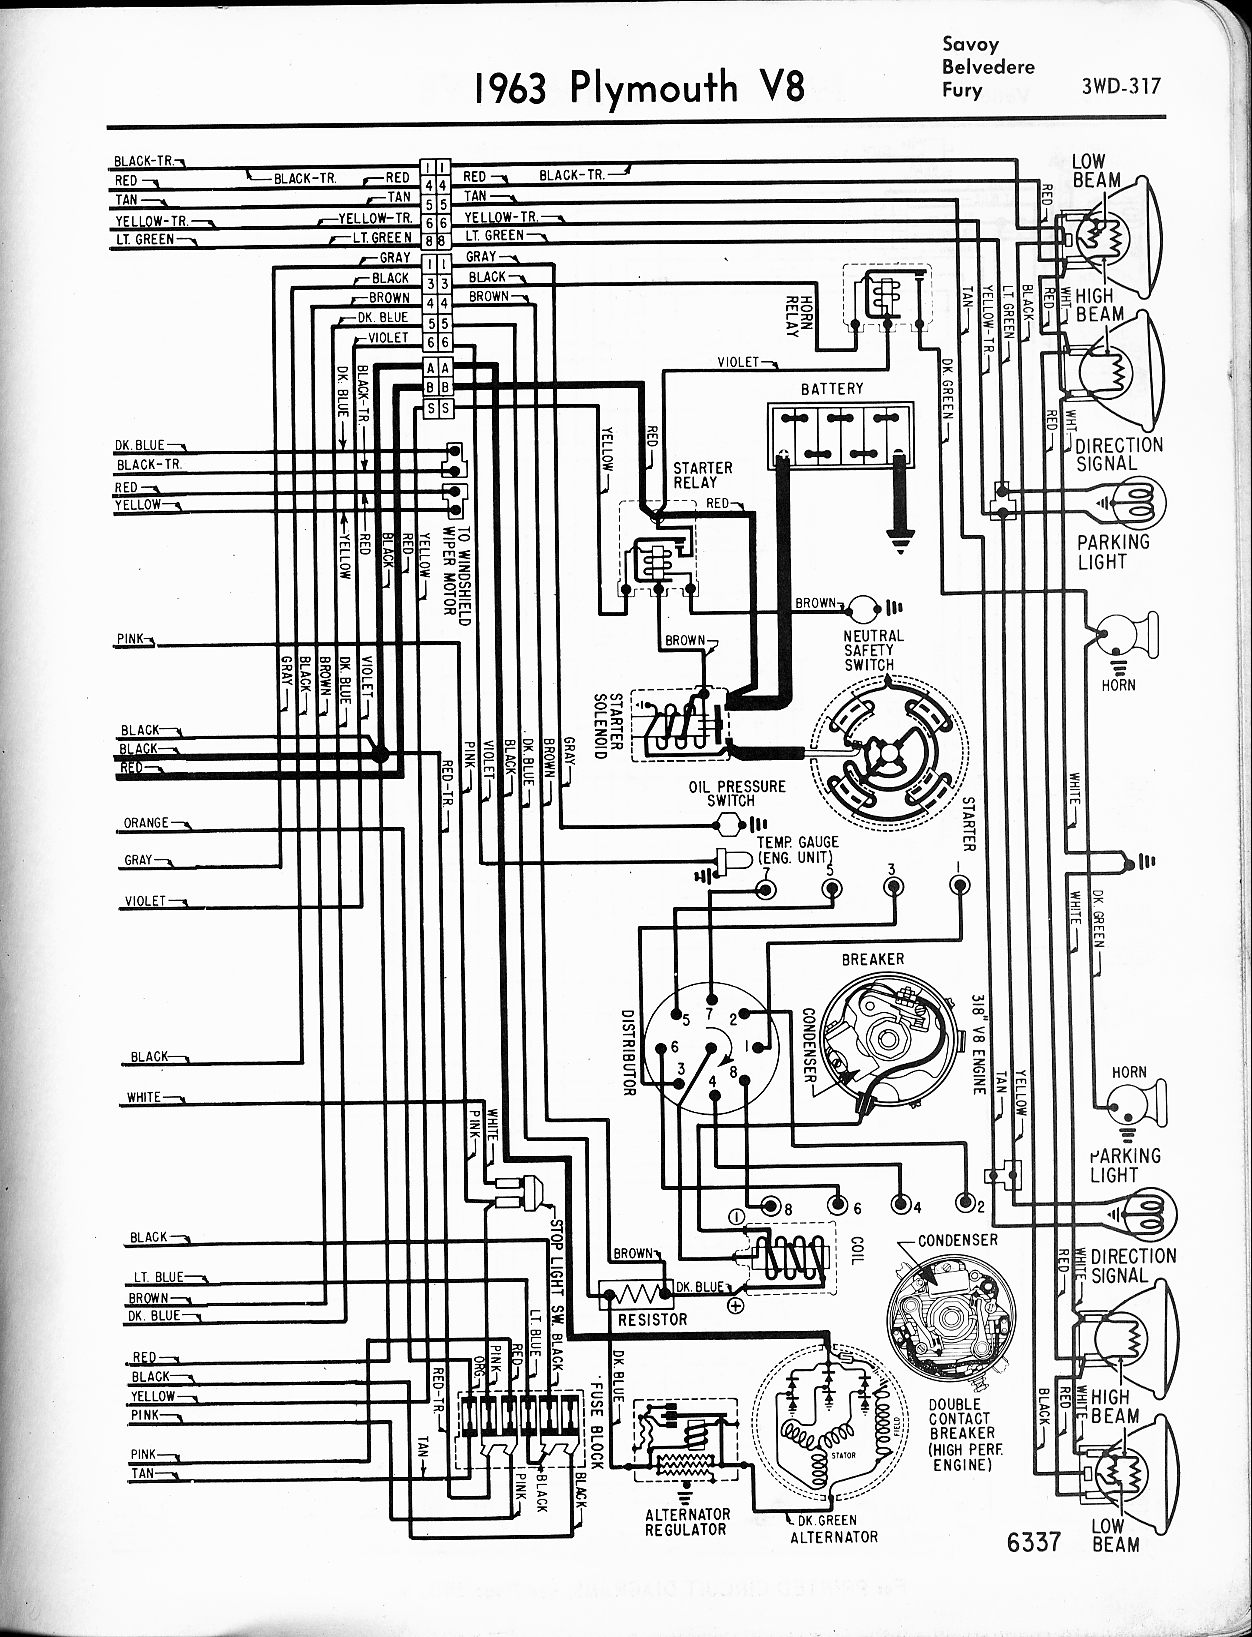 Valiant wiring diagram images